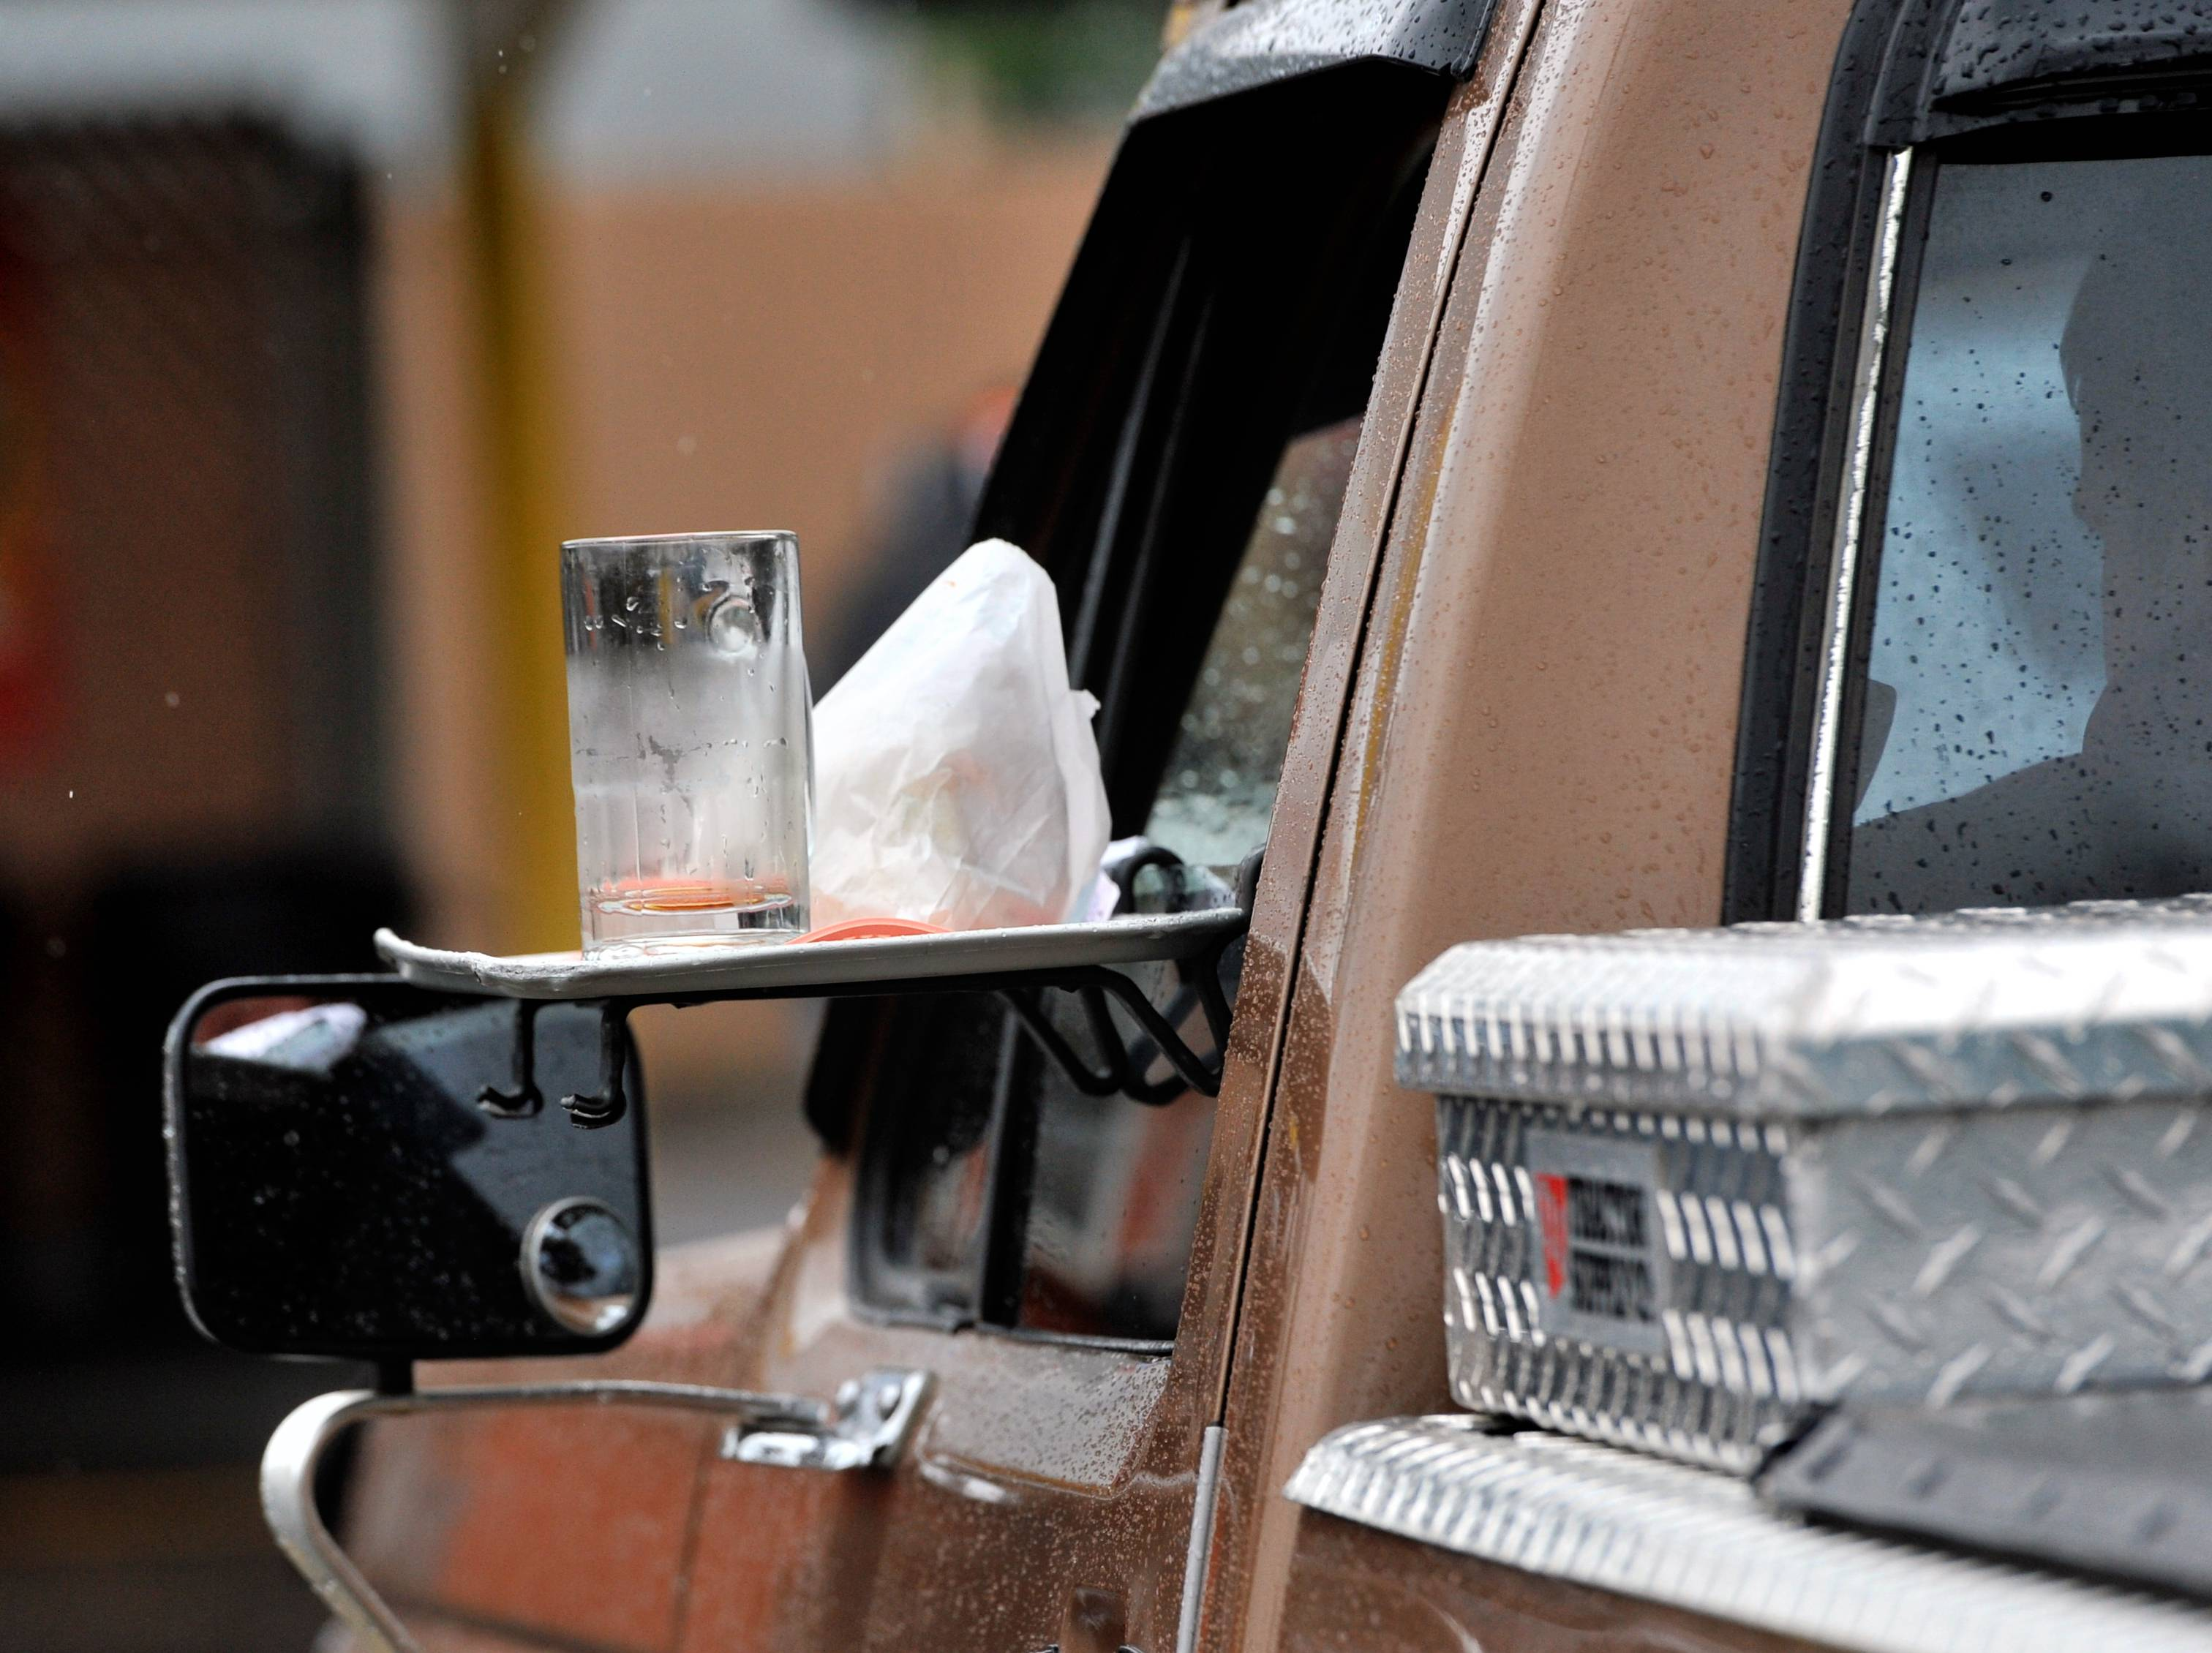 A tray of food sits on the window waiting for a car hop to pick it up earlier this month at Carlson's Drive-In in Michigan City, Ind.